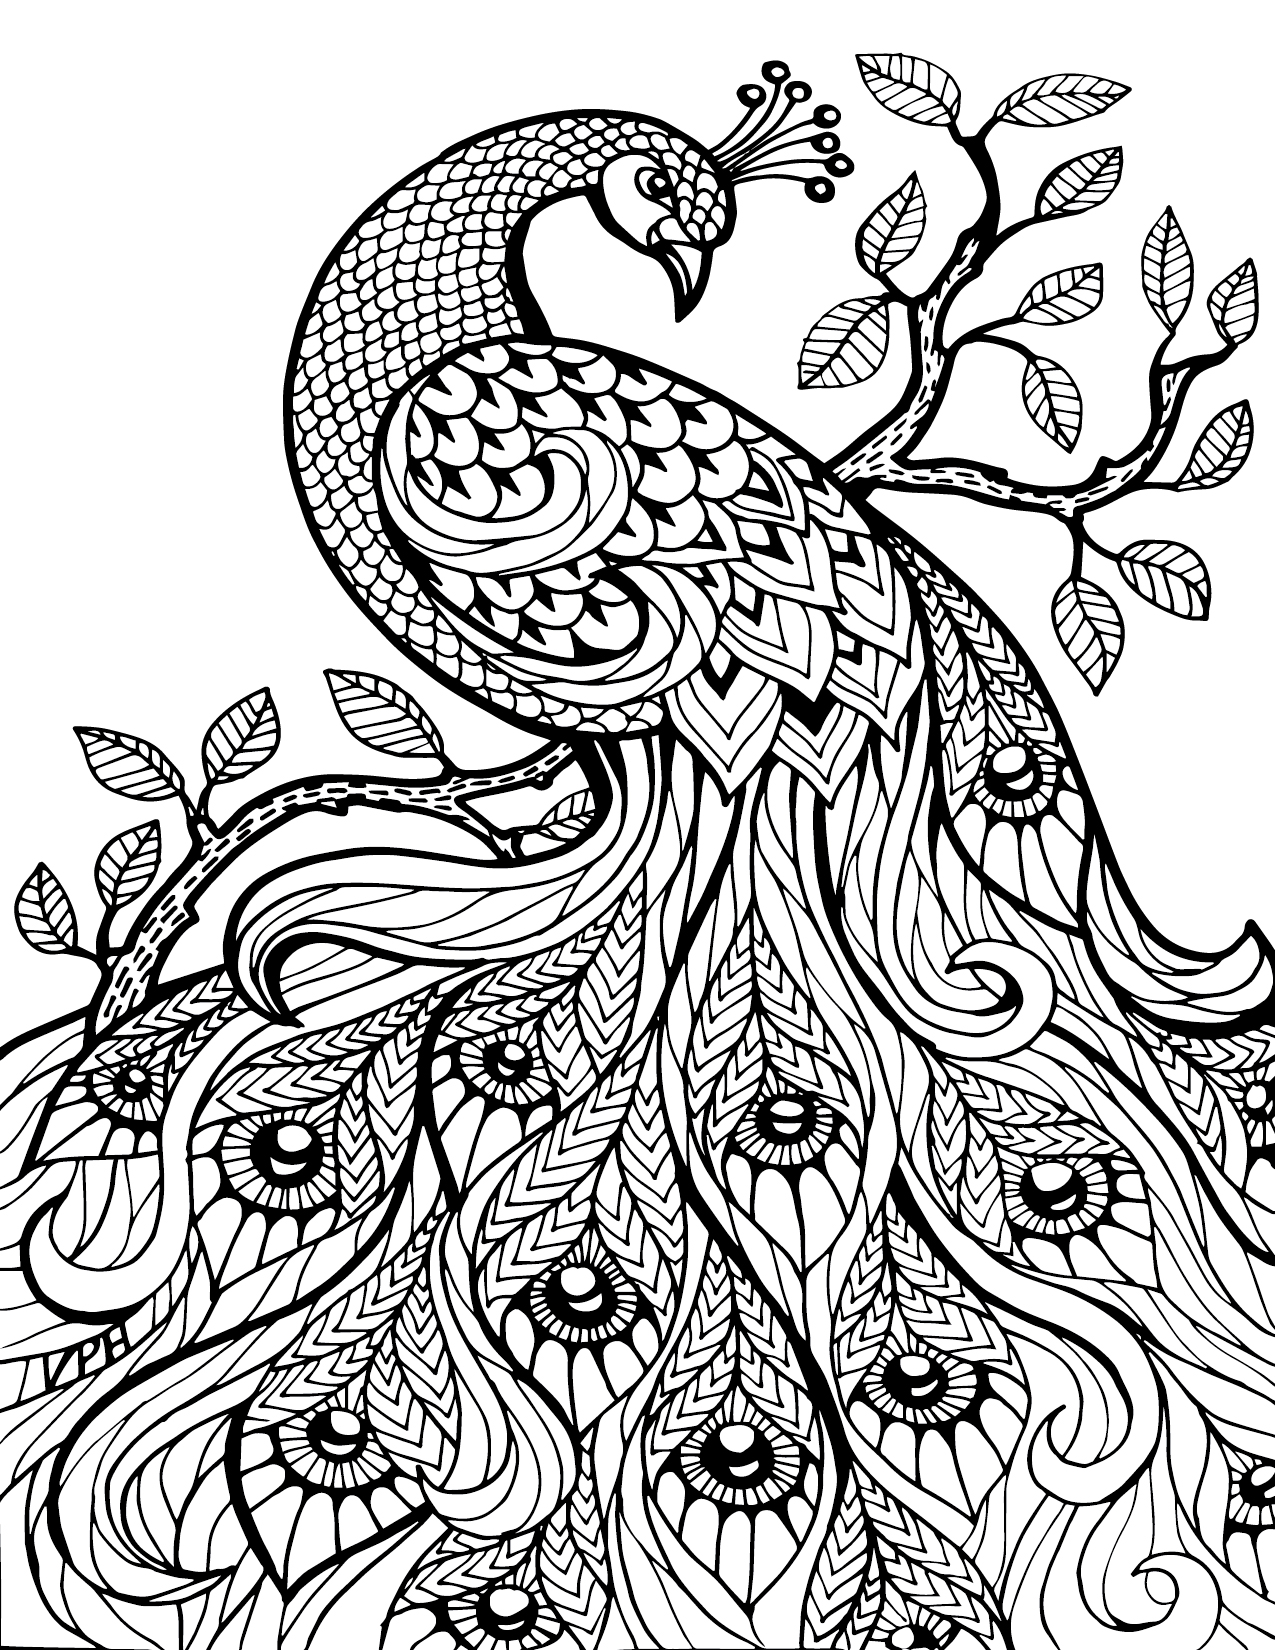 Colouring in for adults why - Peacock